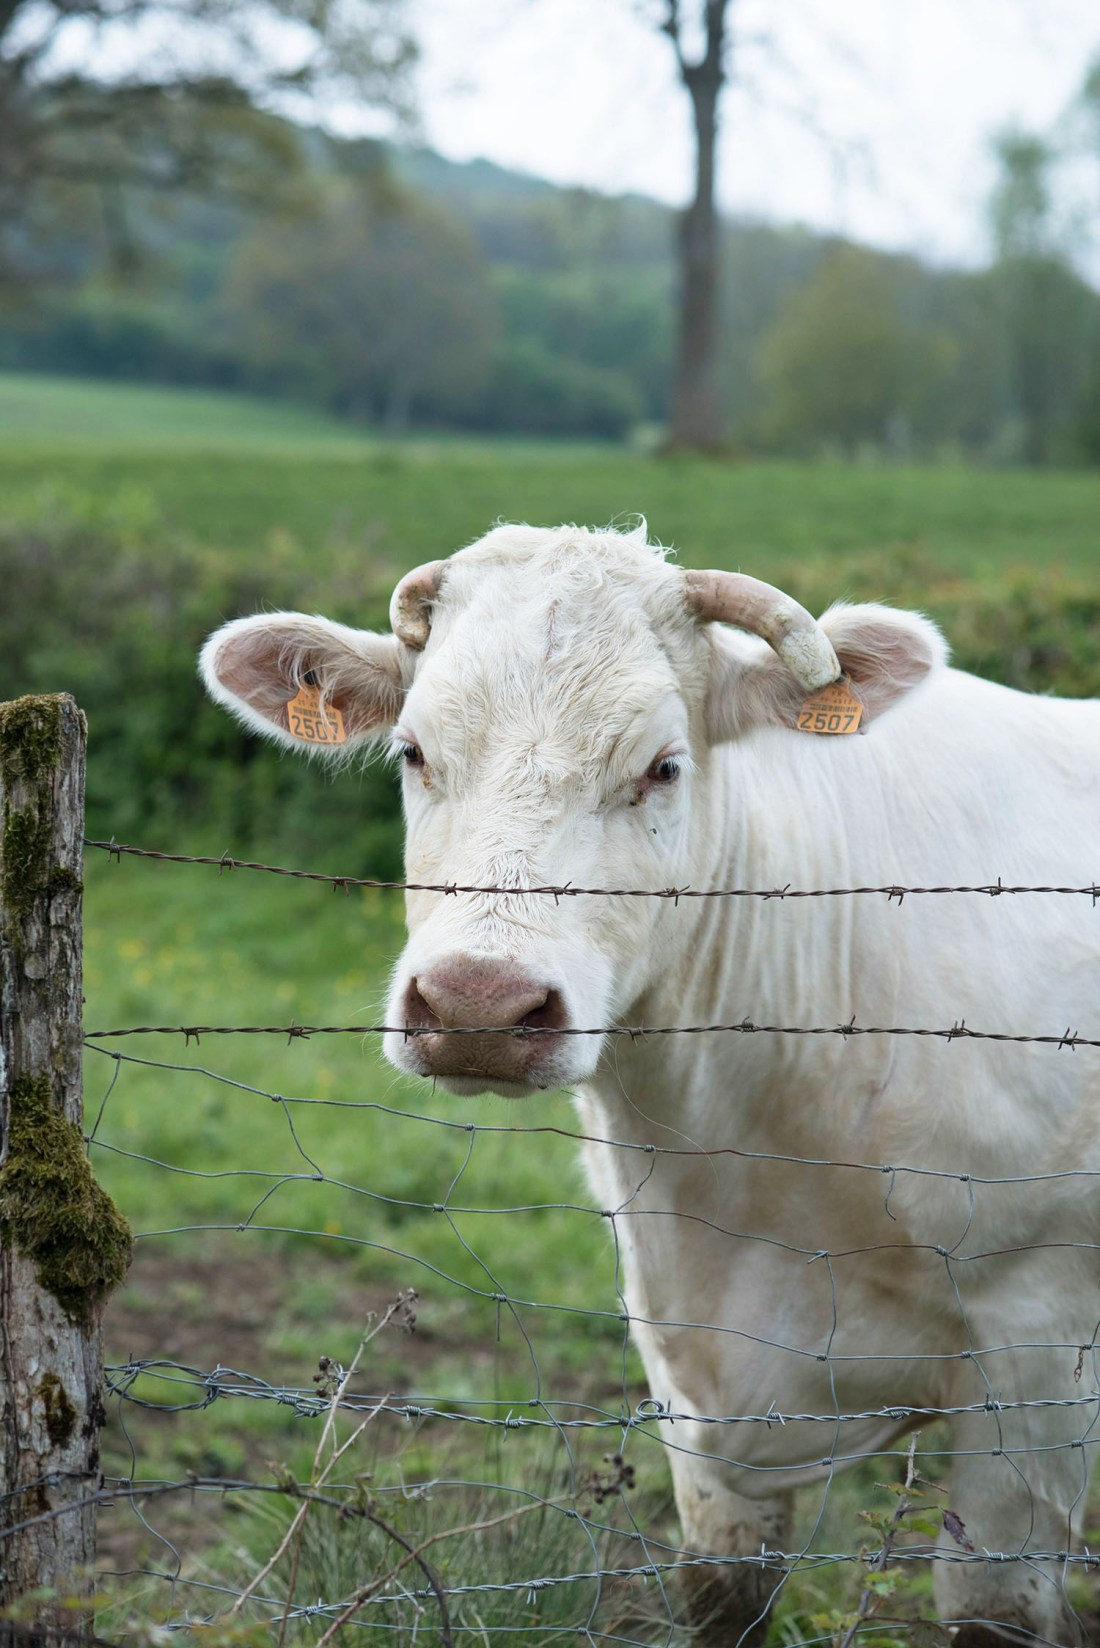 A white cow behind a fence in the Burgundy region of France, as captured by Winnipeg travel blogger Cee Fardoe of Coco & Vera